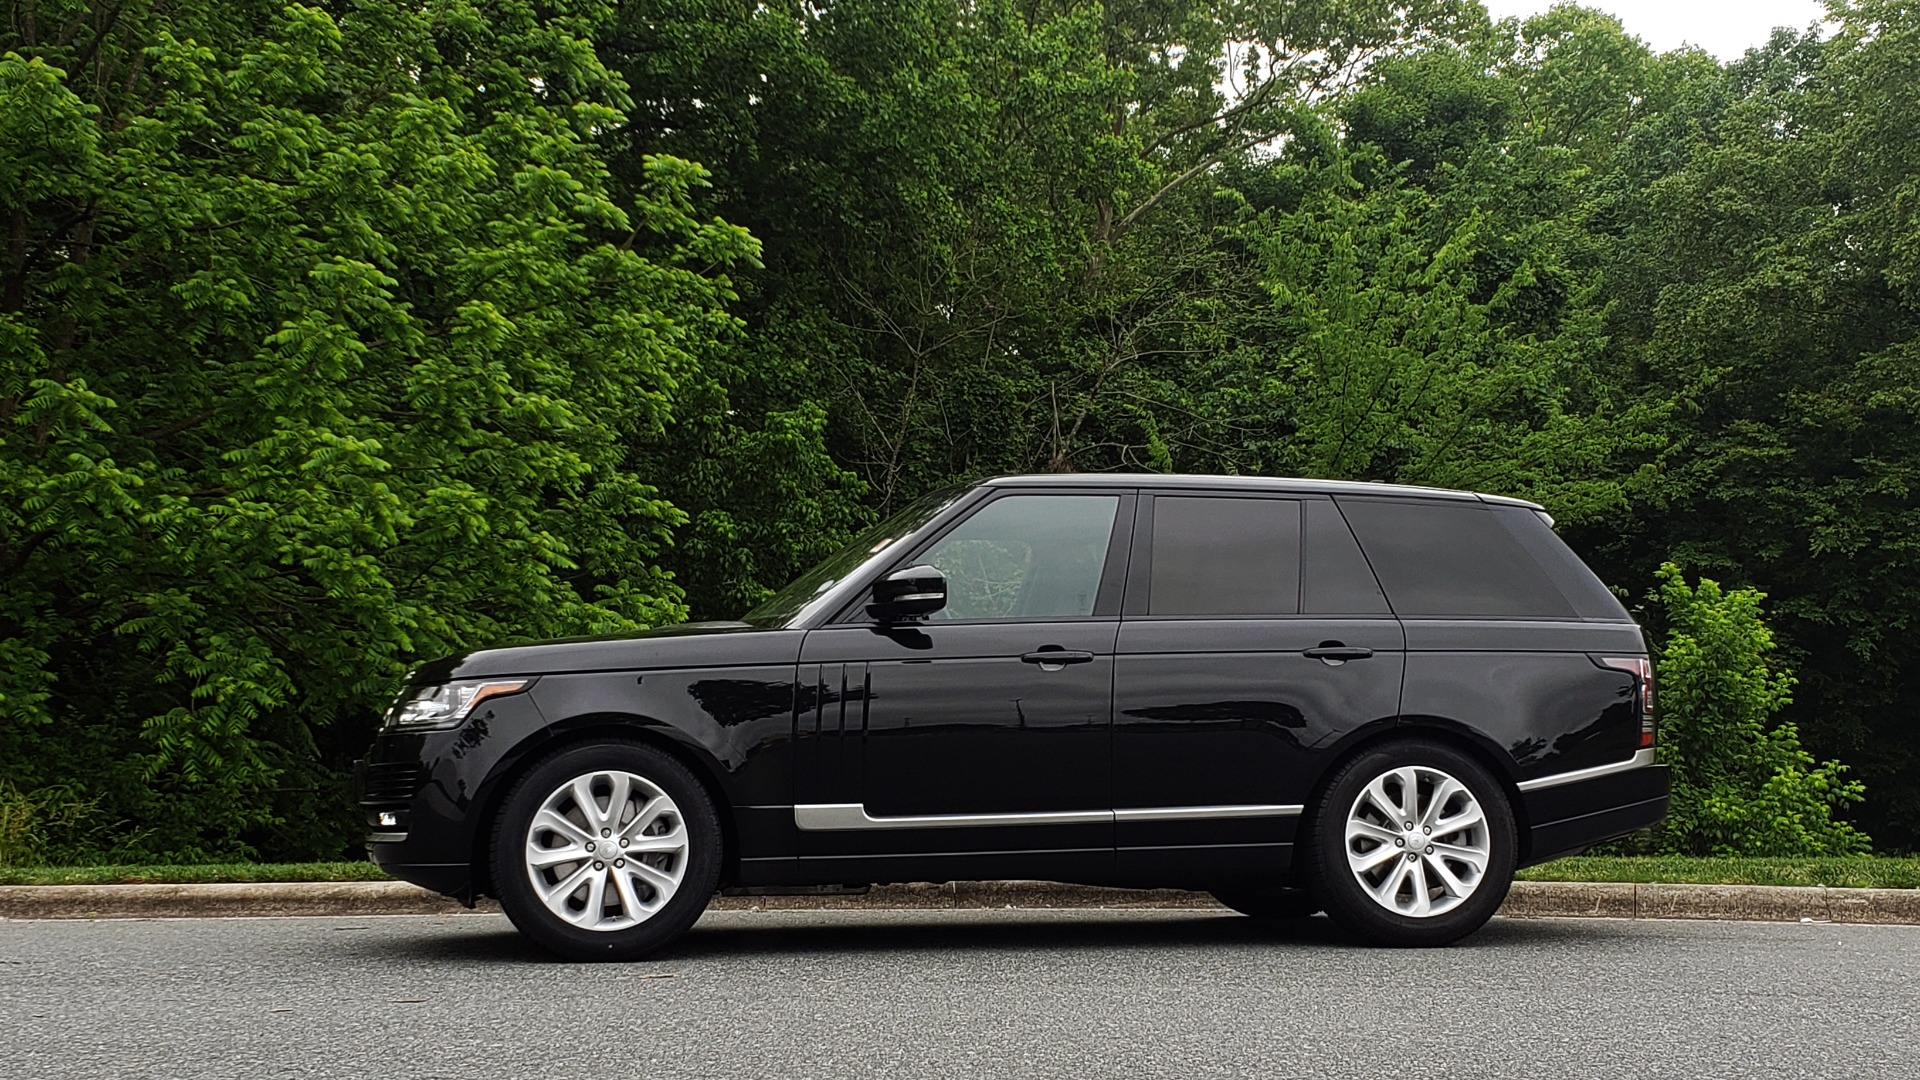 Used 2016 Land Rover Range Rover HSE 3.0L SC V6 / NAV / PANO-ROOF / VENT SEATS / REARVIEW / BLIND SPOT for sale Sold at Formula Imports in Charlotte NC 28227 2